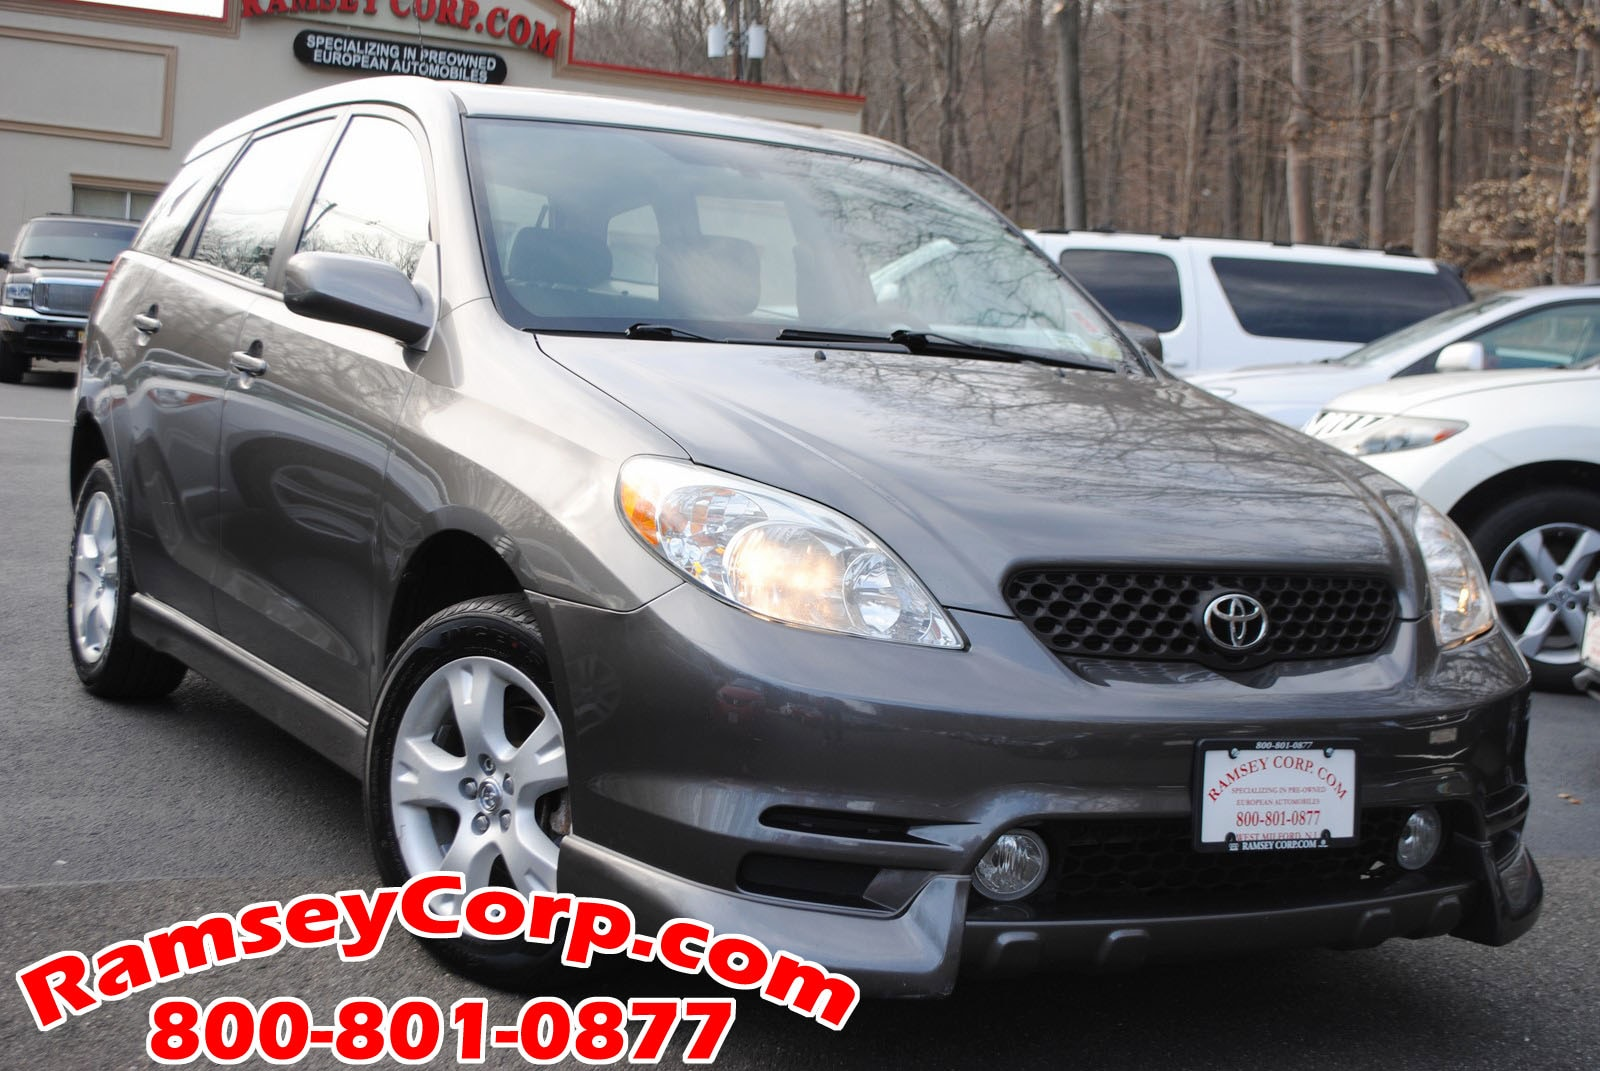 Used 2004 Toyota Matrix For Sale | West Milford NJ